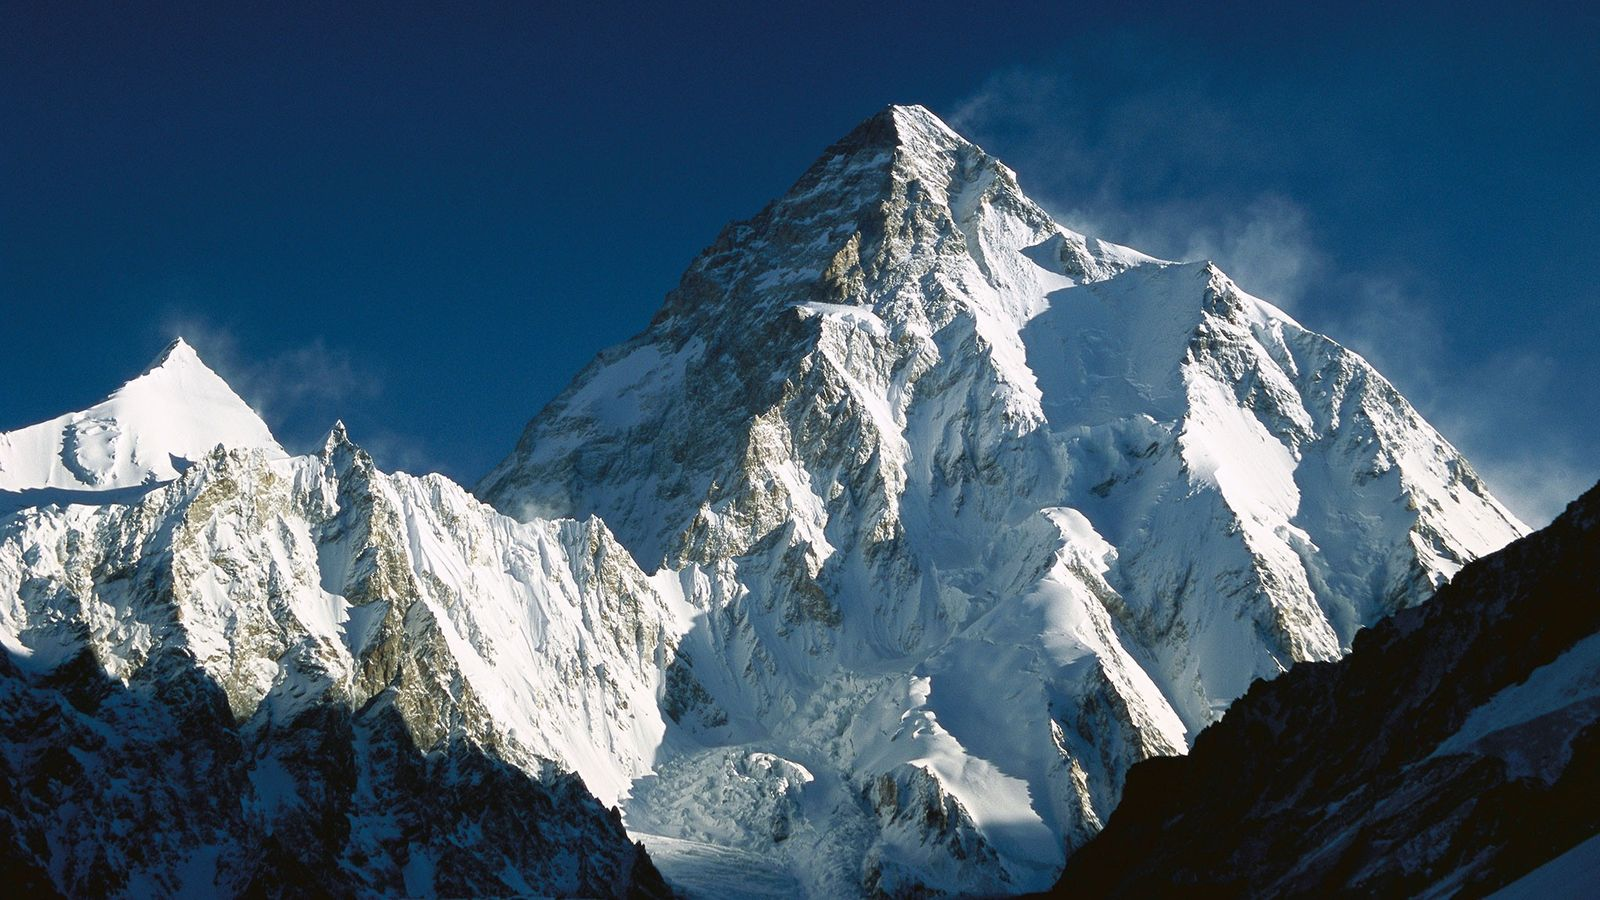 Climbers Attempt 'Impossible' K2 Winter Ascent | National Geographic